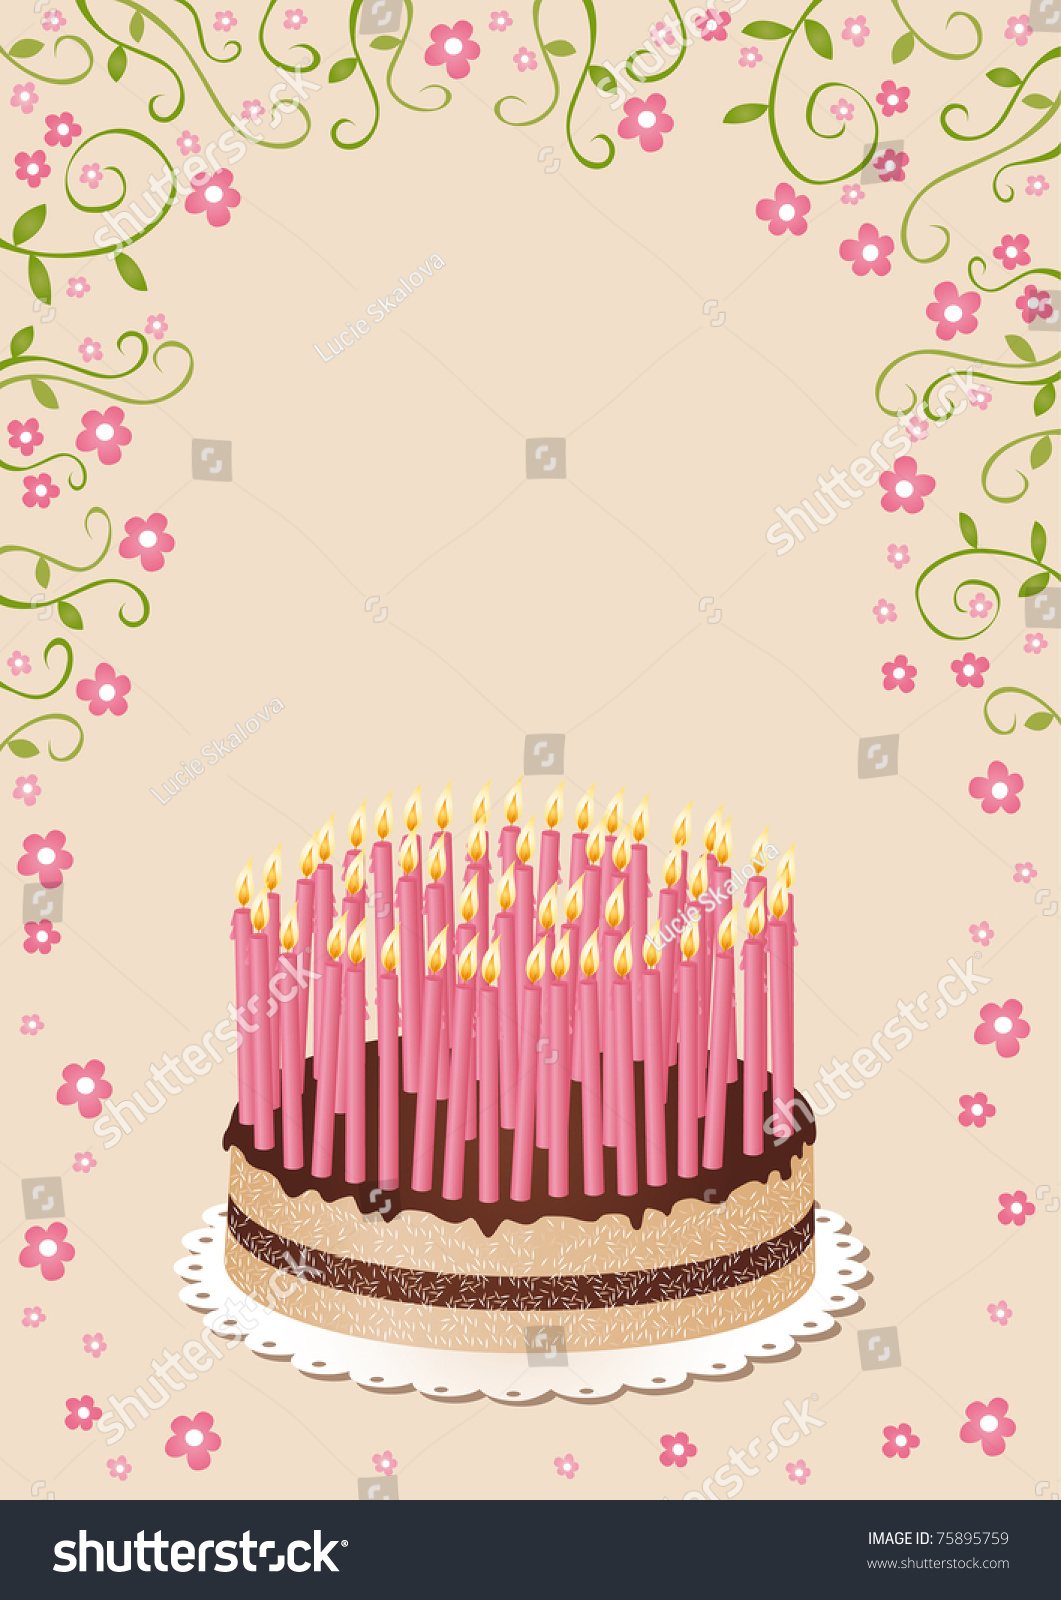 Birthday Cake 50 Candles Raster Image Stock Illustration 75895759